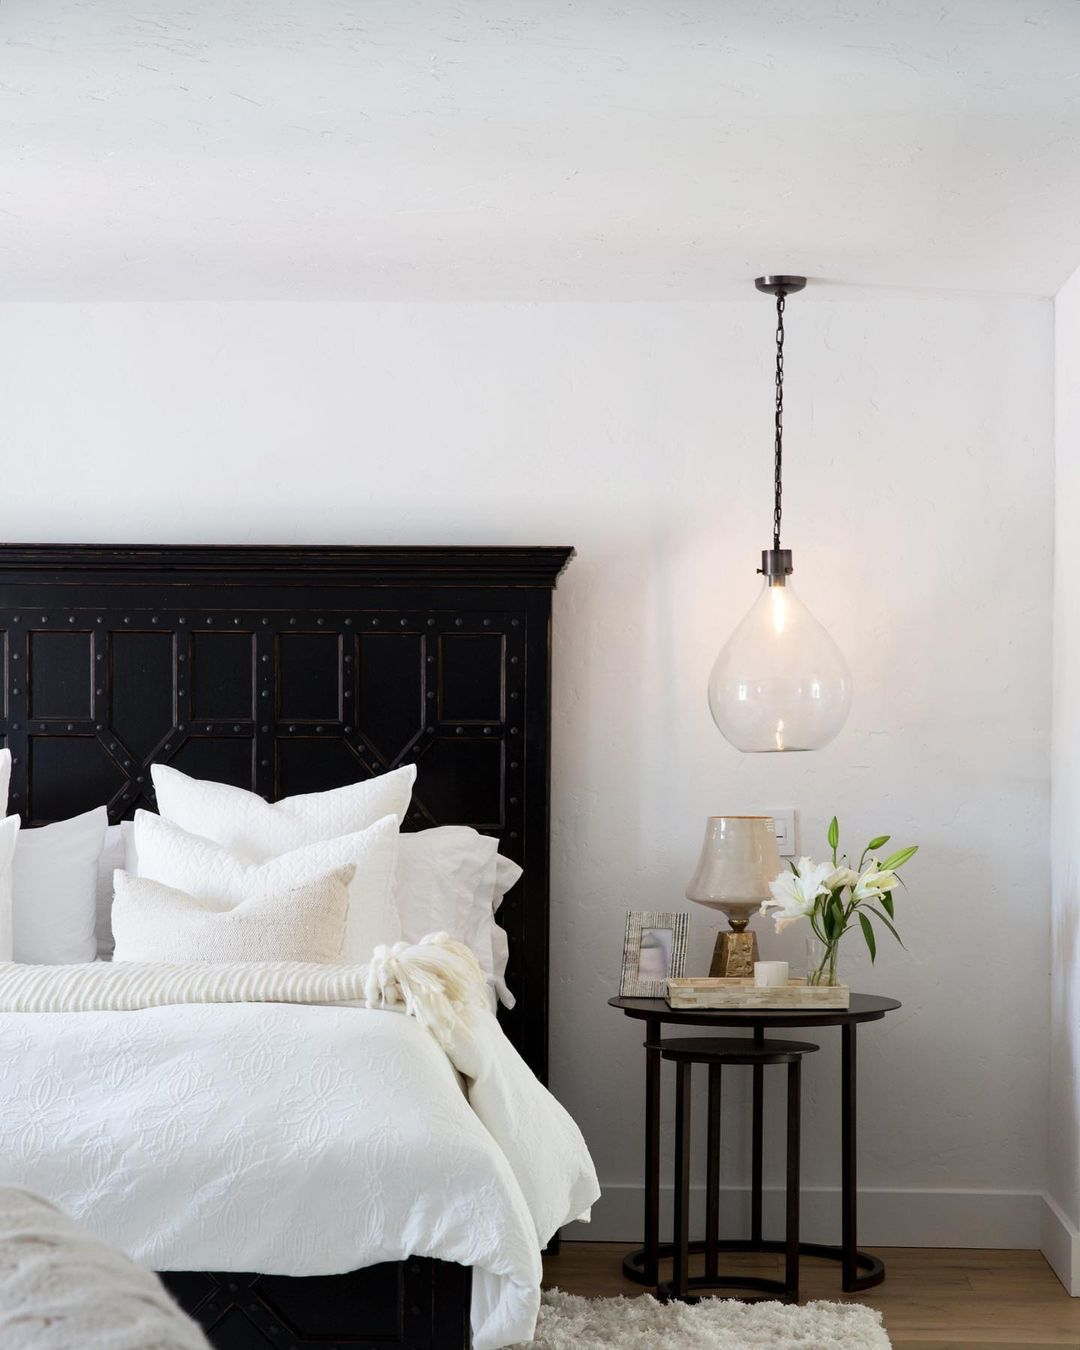 Bedroom with large black bedframe and glass pendant light.